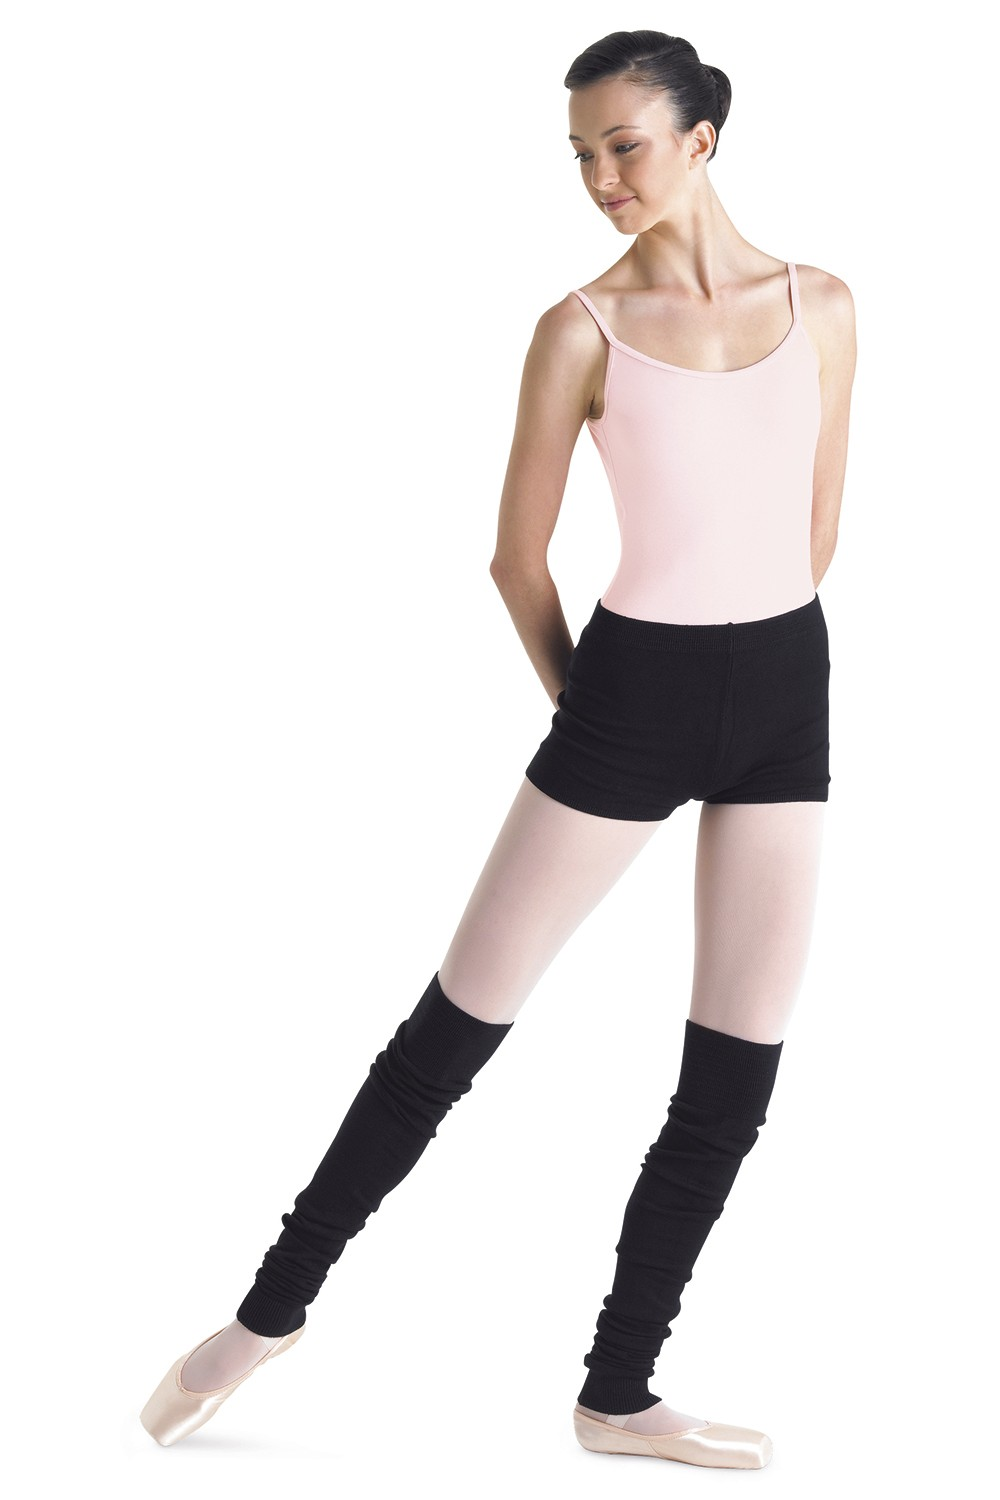 Above The Knee Leg Warmers Women's Dance Warmups